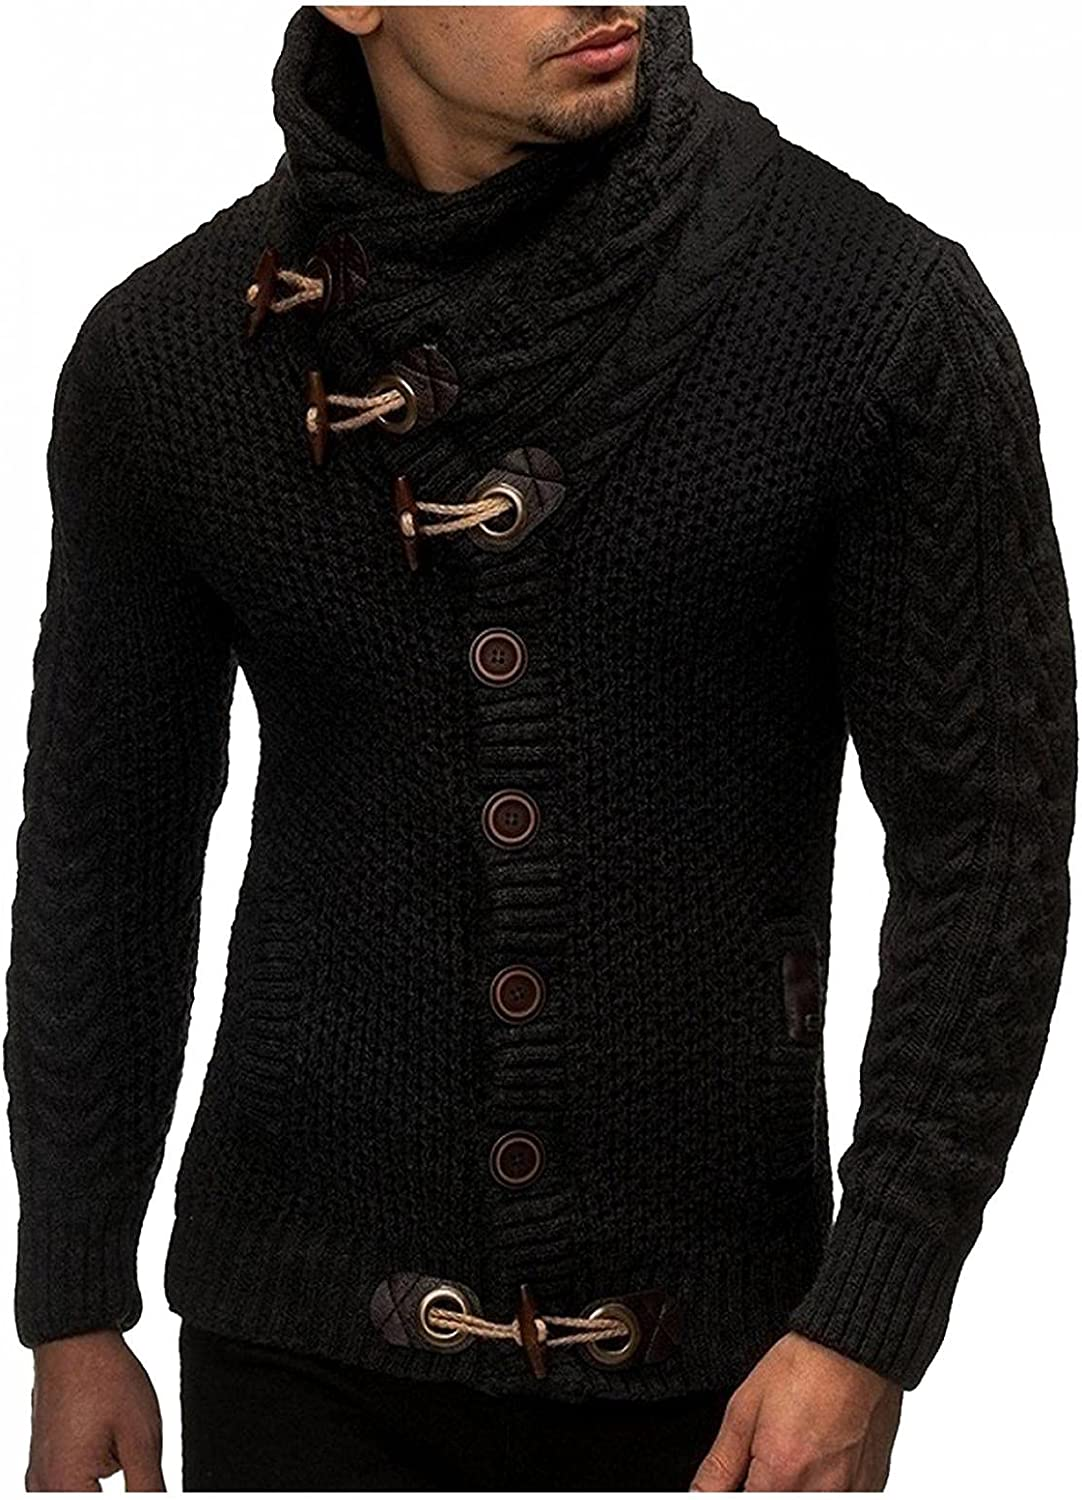 WUAI-Men Thermal Turtleneck Sweaters Winter Warm Ribbed Knit Loose Fit Chunky Thermal Cable Pullover Knitwear